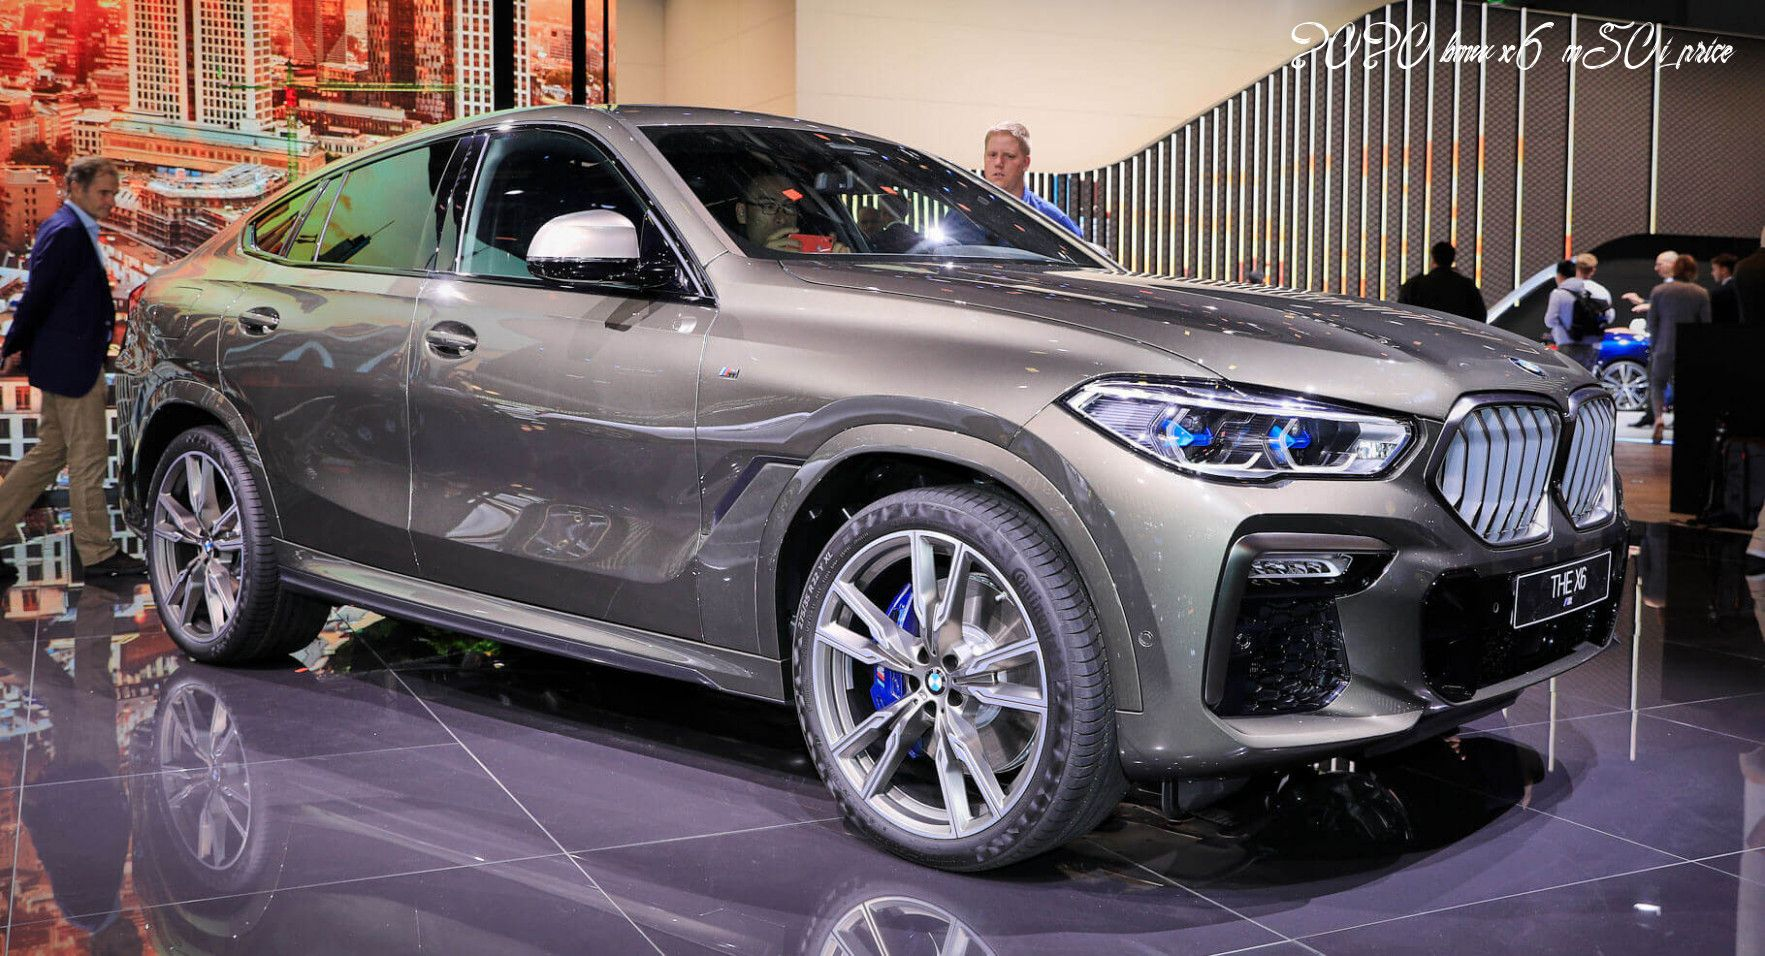 2020 Bmw X6 M50i Price Price And Review In 2020 Bmw X6 Bmw Bmw 4 Series